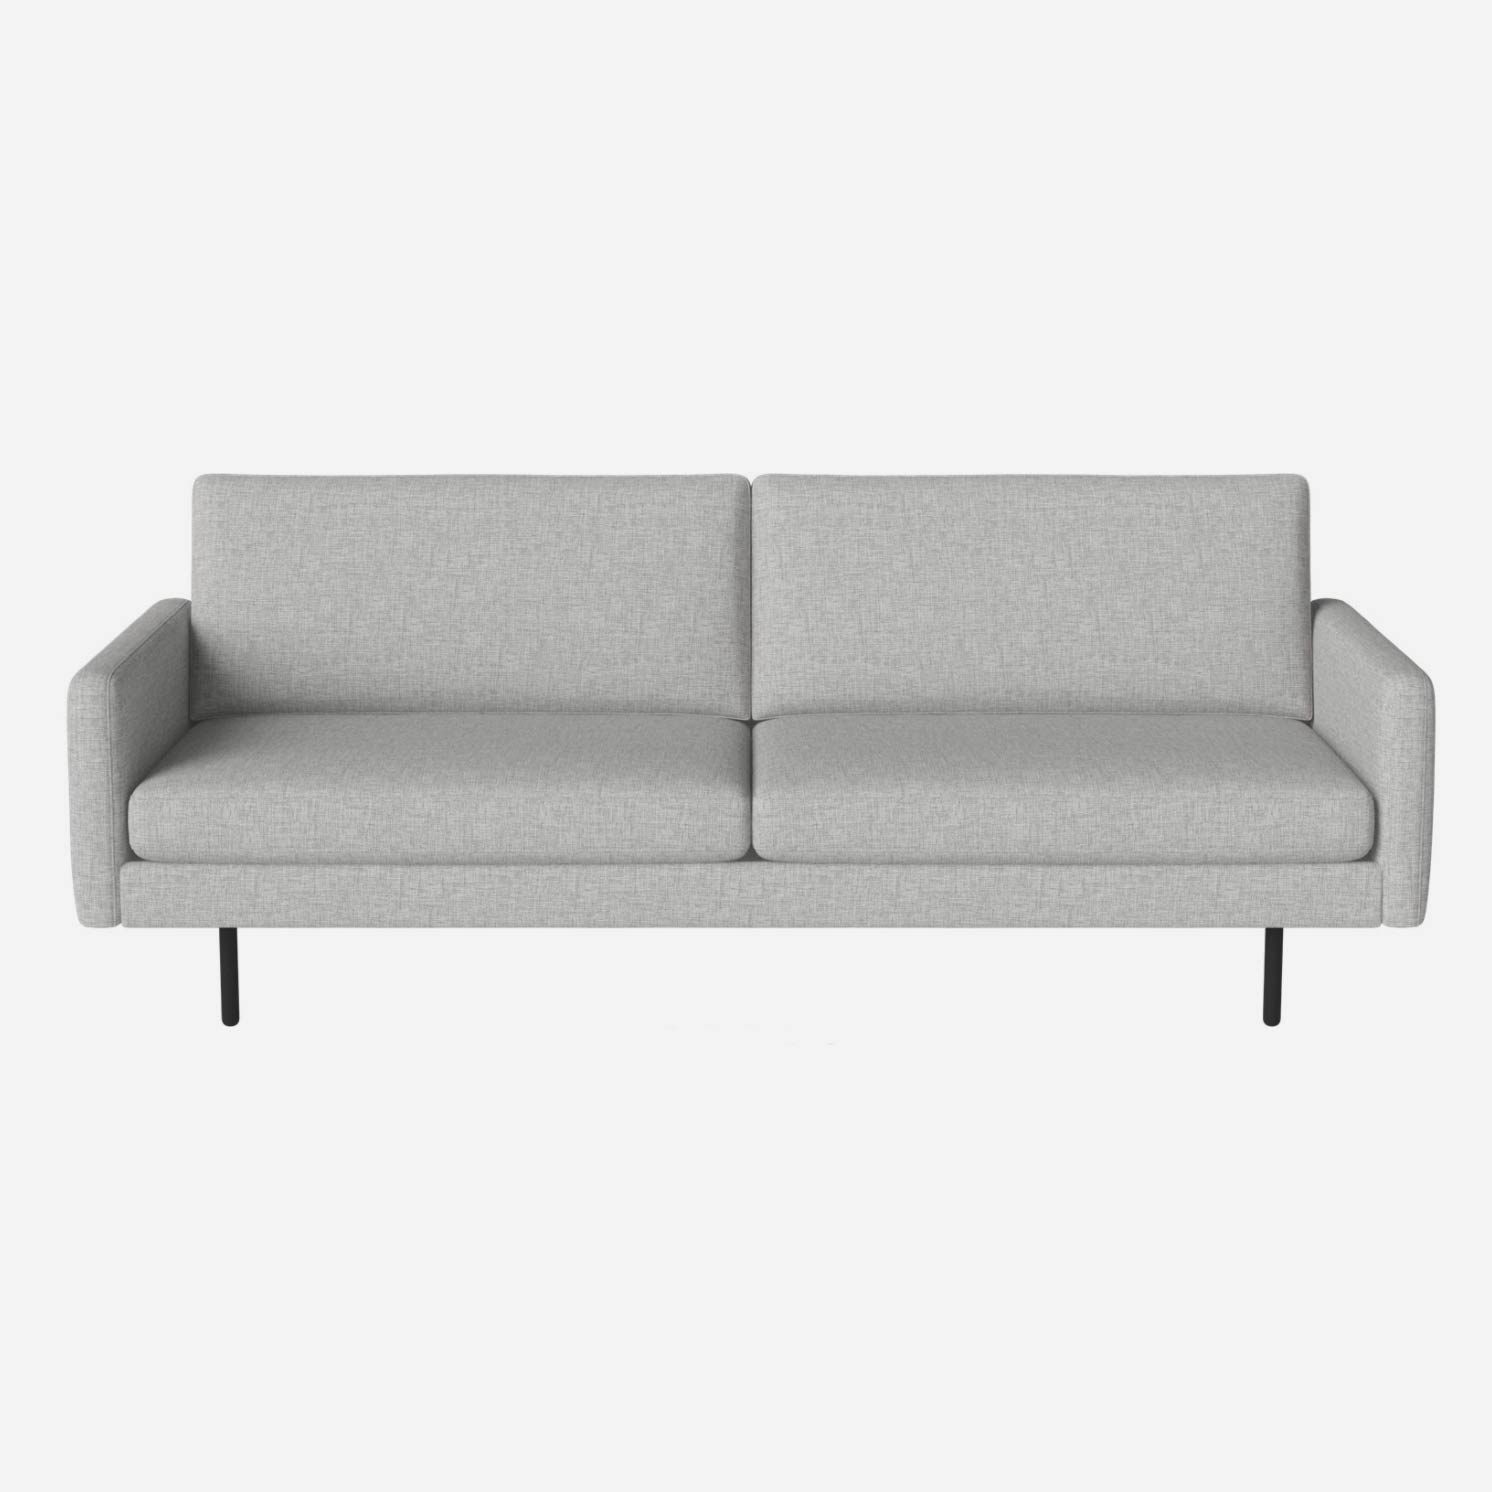 Bolia Sofa Scandinavia Remix Grau Mobel Bar Ag